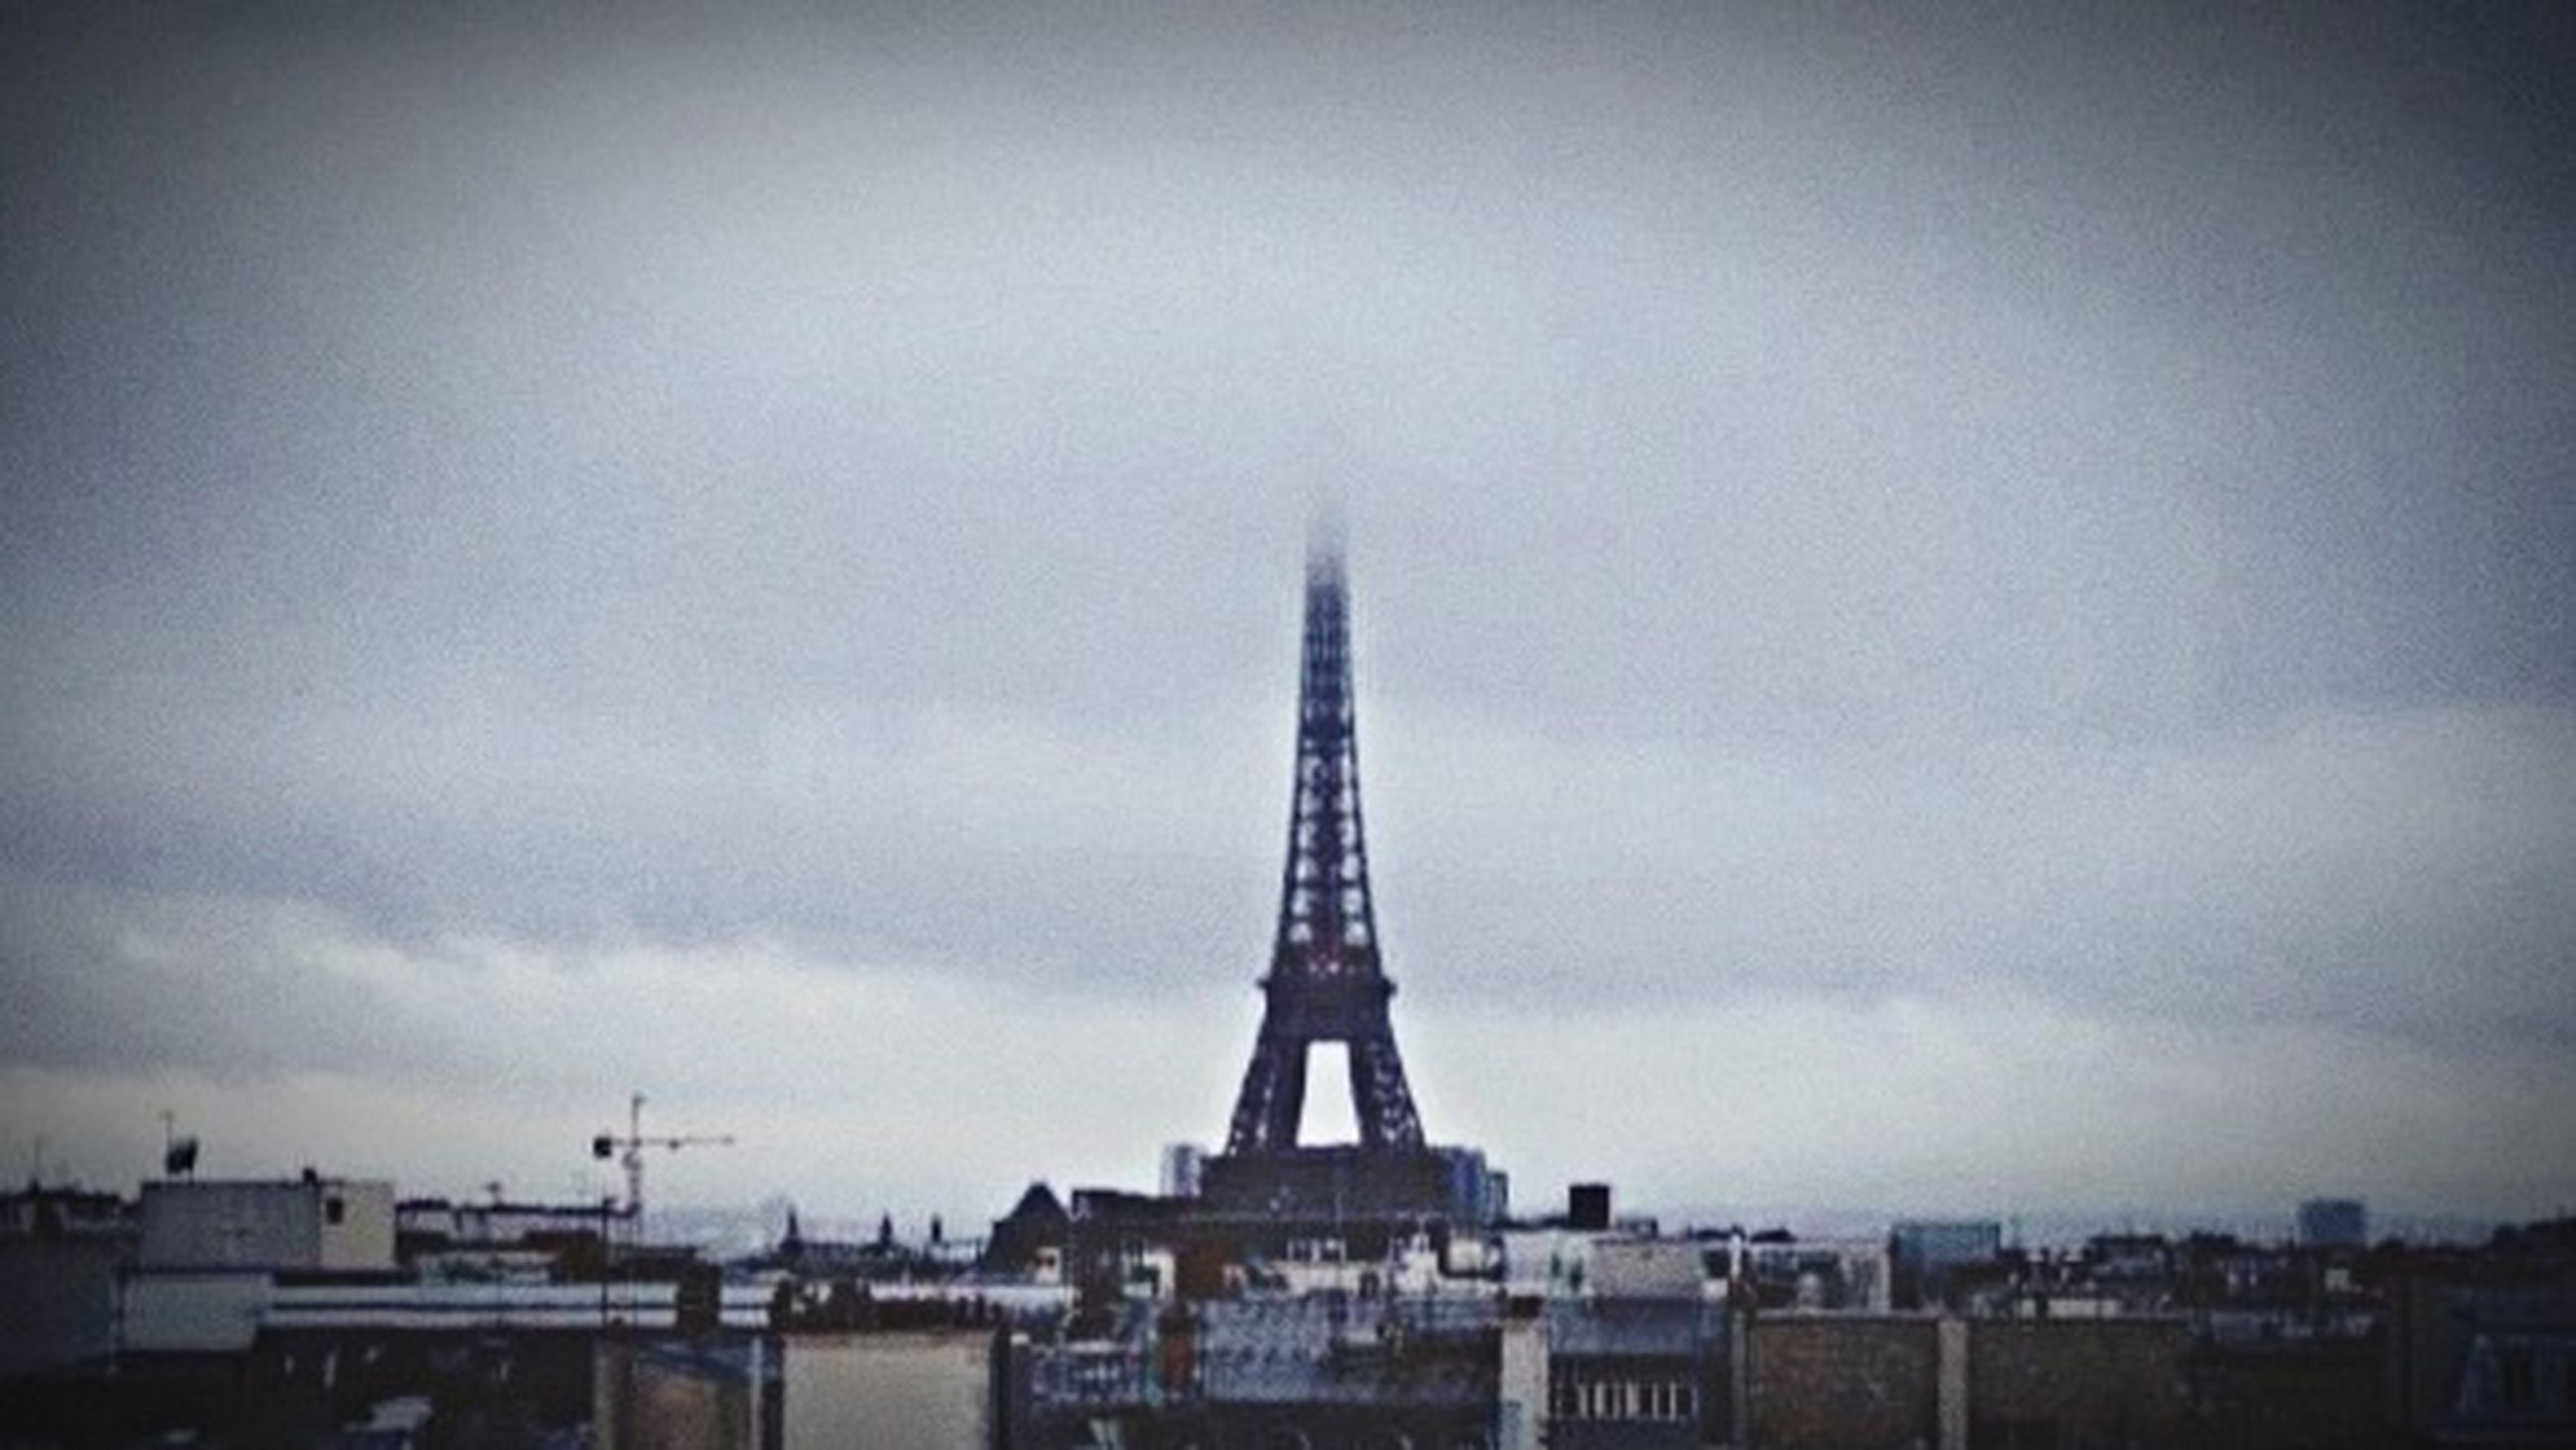 architecture, built structure, sky, low angle view, cloud - sky, building exterior, cloudy, eiffel tower, tower, tall - high, city, overcast, international landmark, weather, travel destinations, famous place, capital cities, dusk, cloud, outdoors